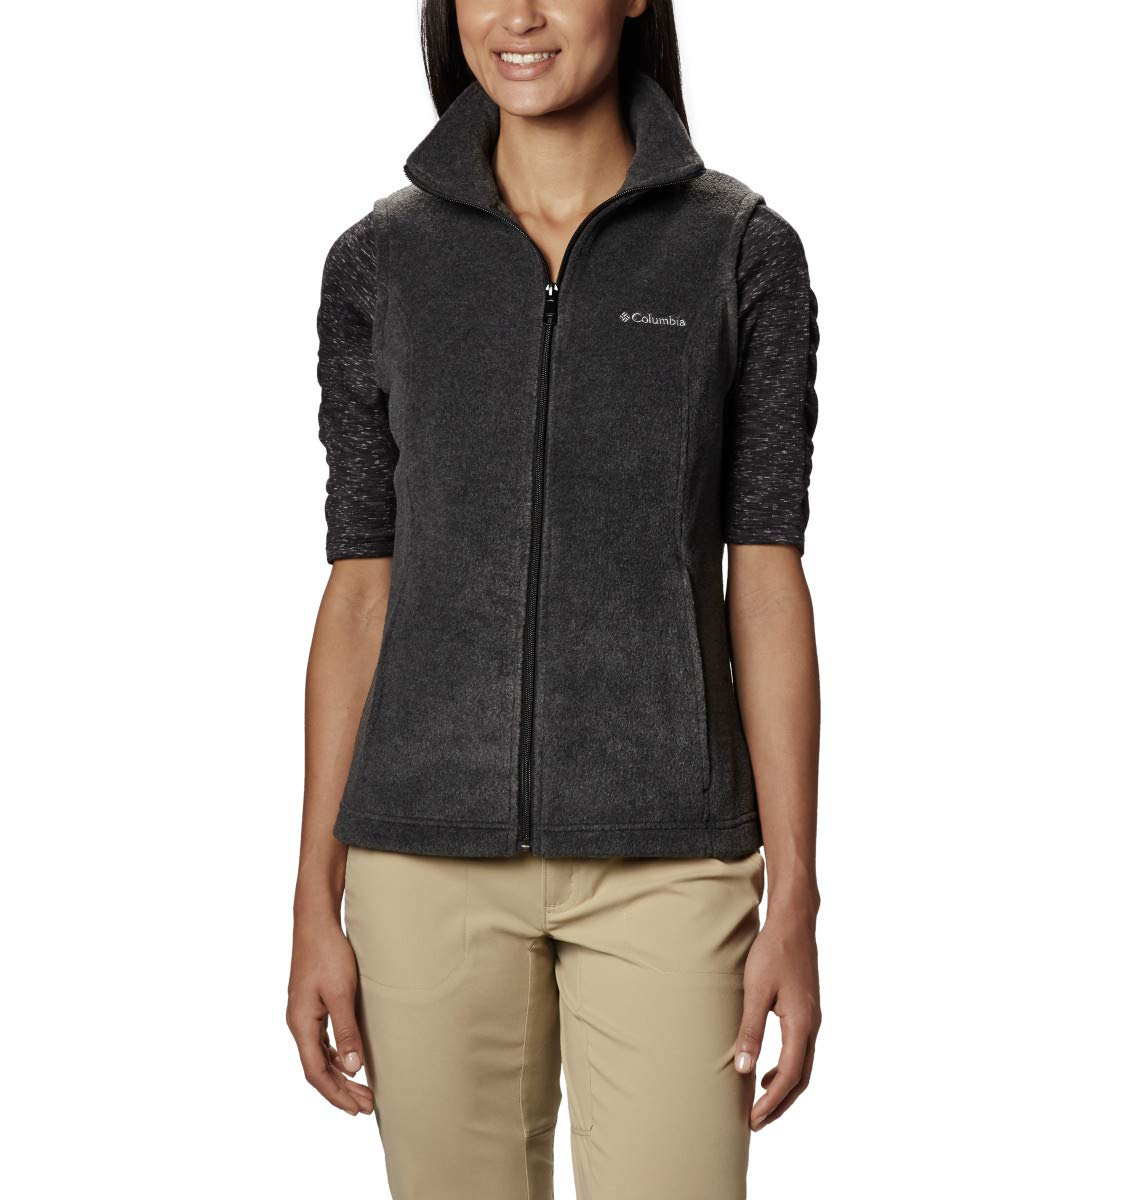 Columbia Women's Petite Benton Springs Vest, Charcoal Heather, Small by Columbia